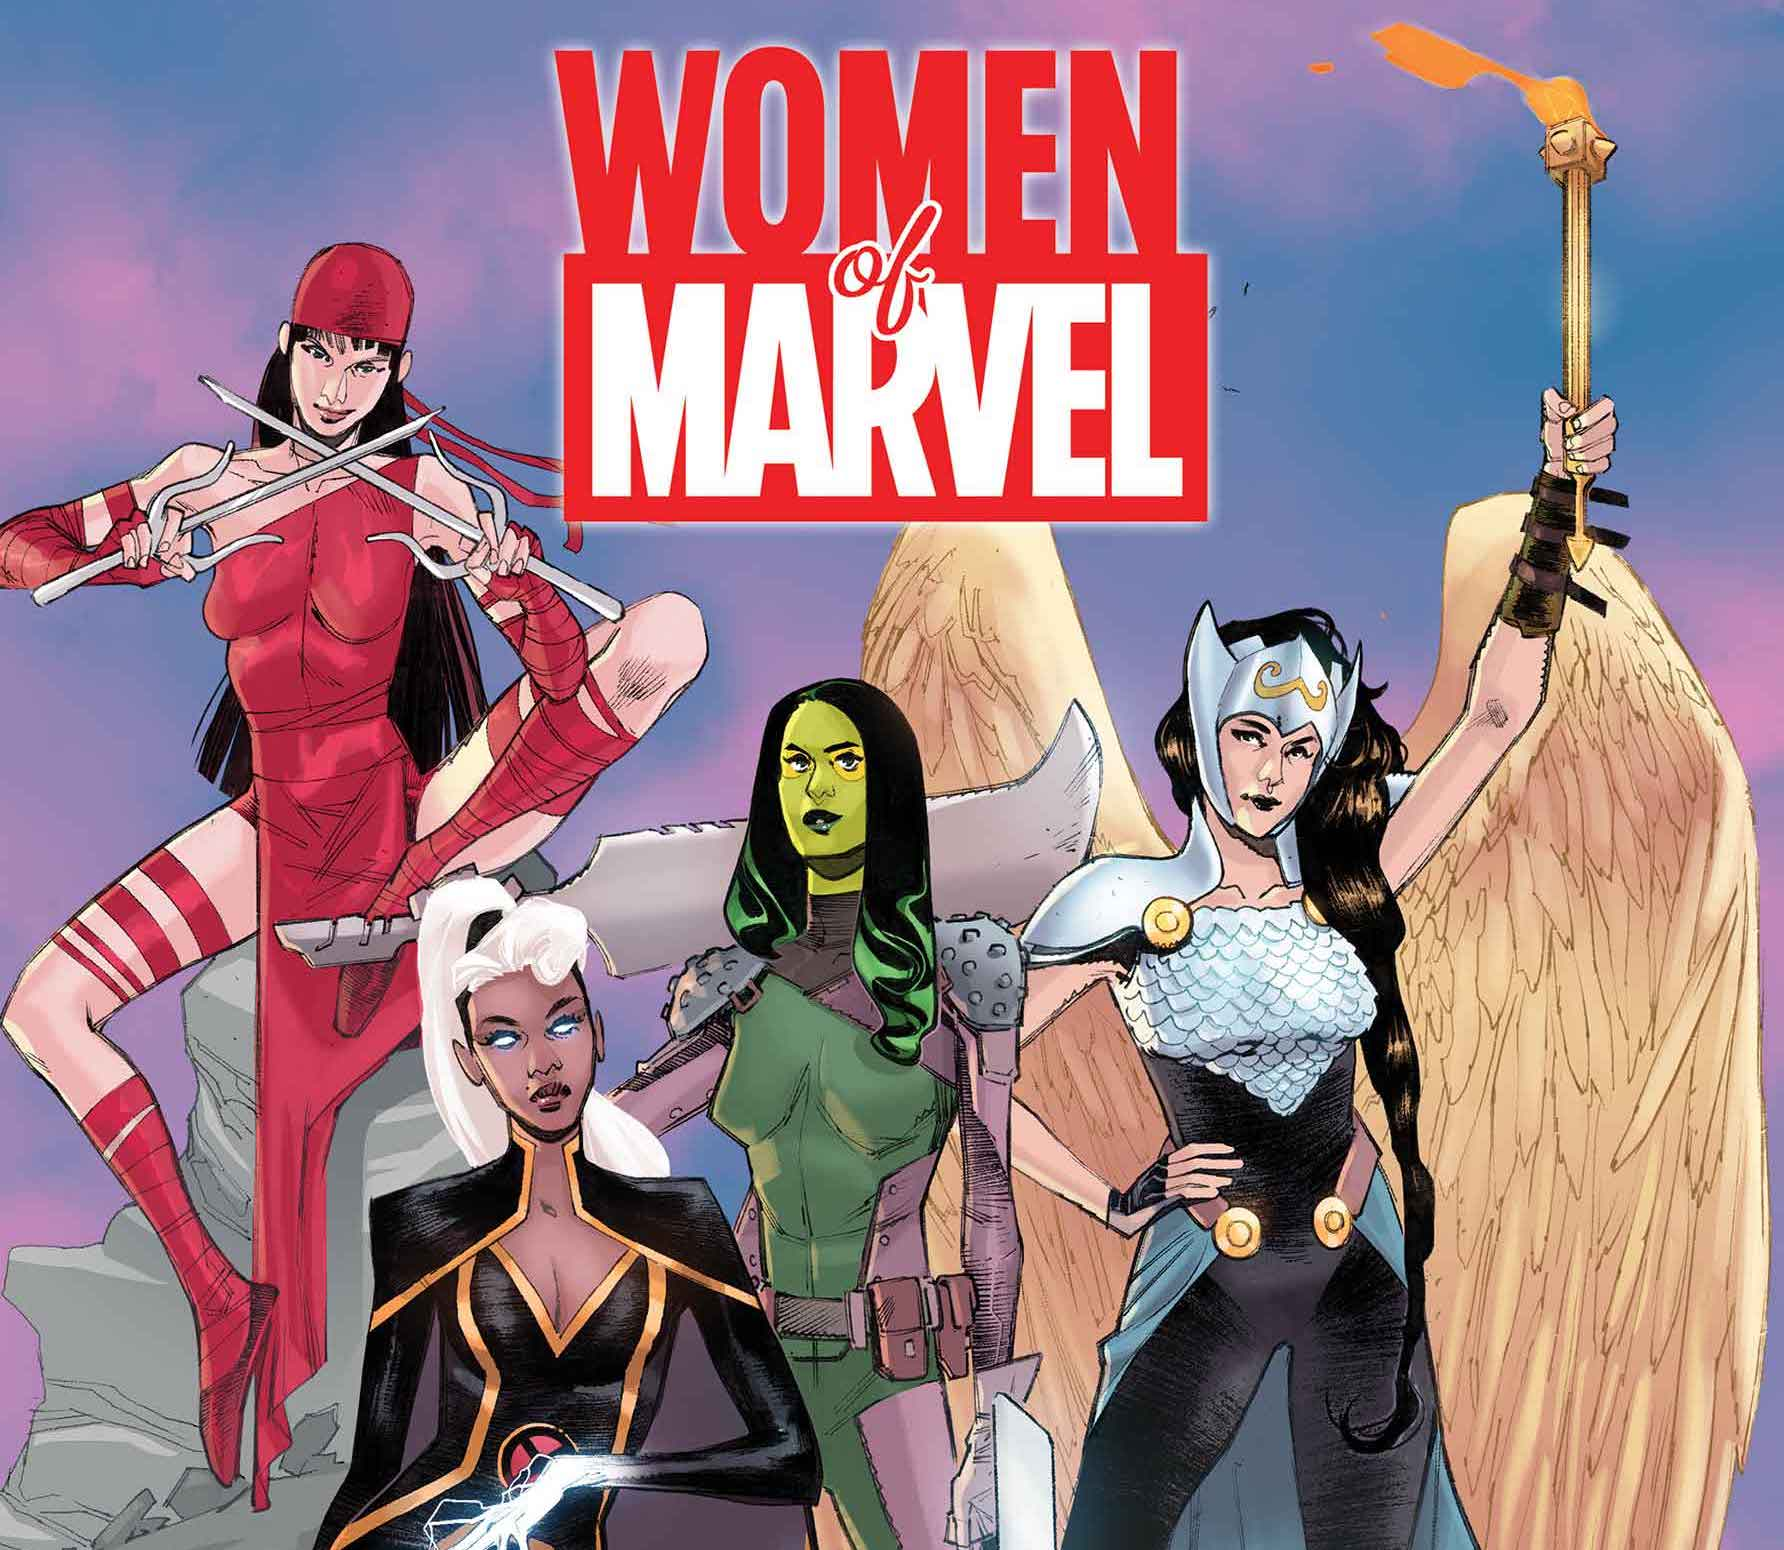 All-star creators celebrate the women of Marvel in upcoming special